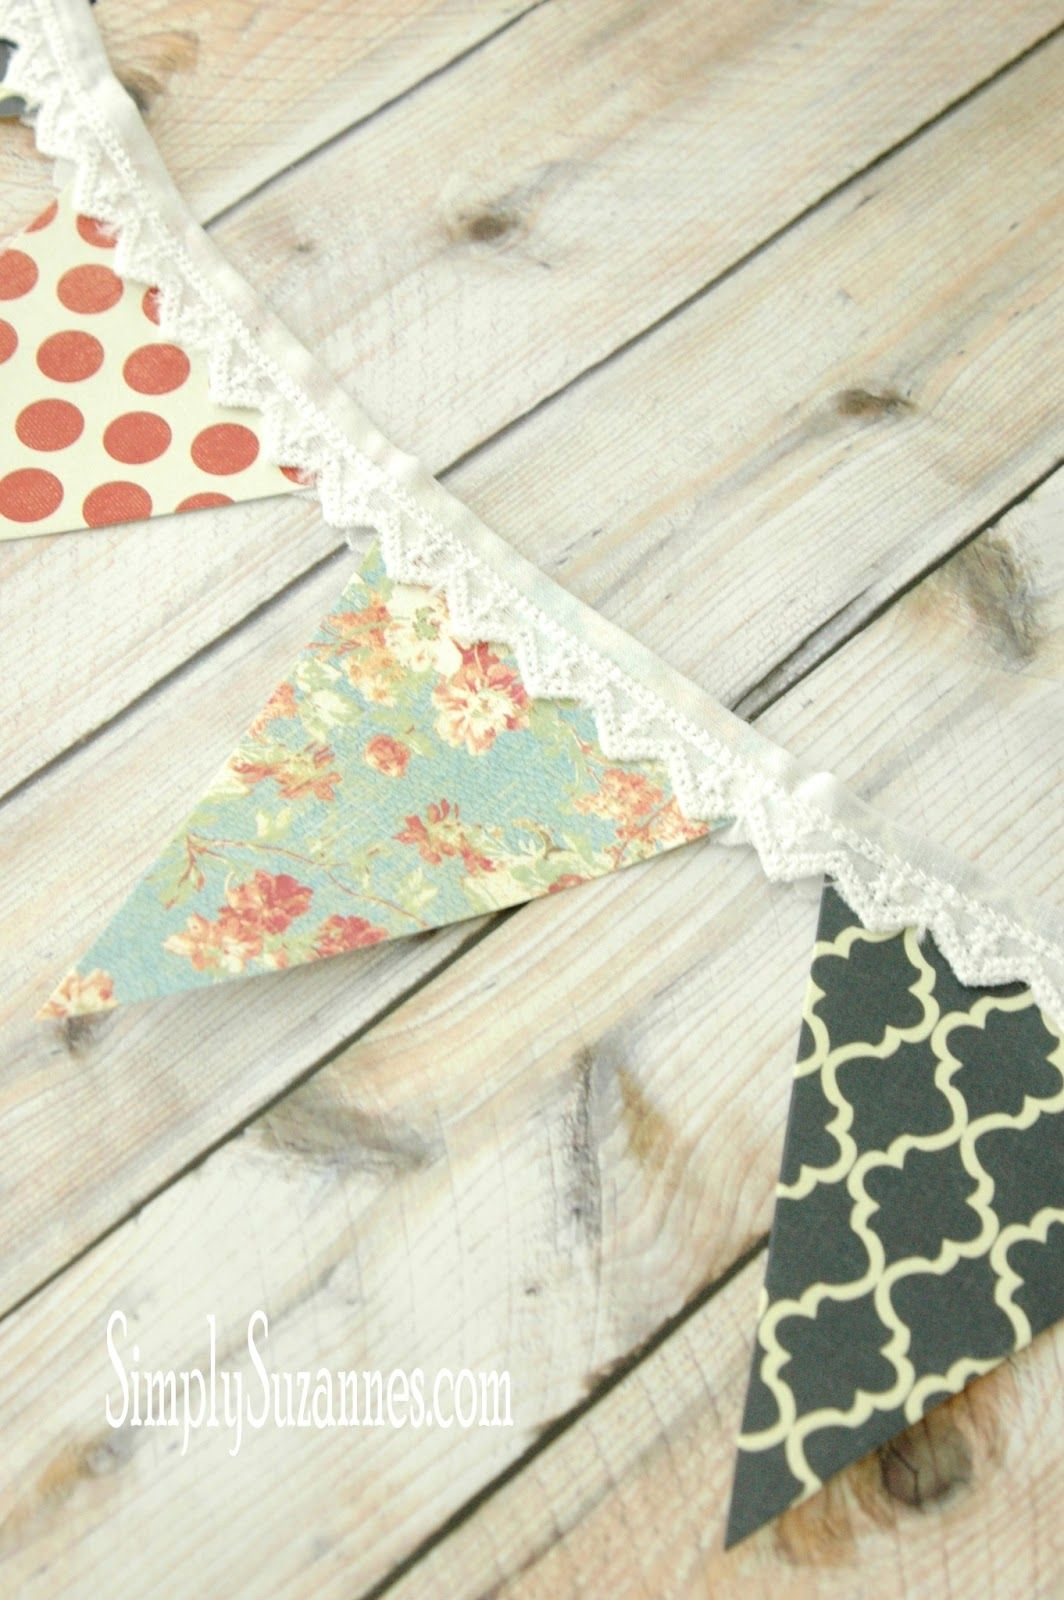 Simply Suzanne\'s AT HOME: easy-to-make Summer bunting | Crafts ...